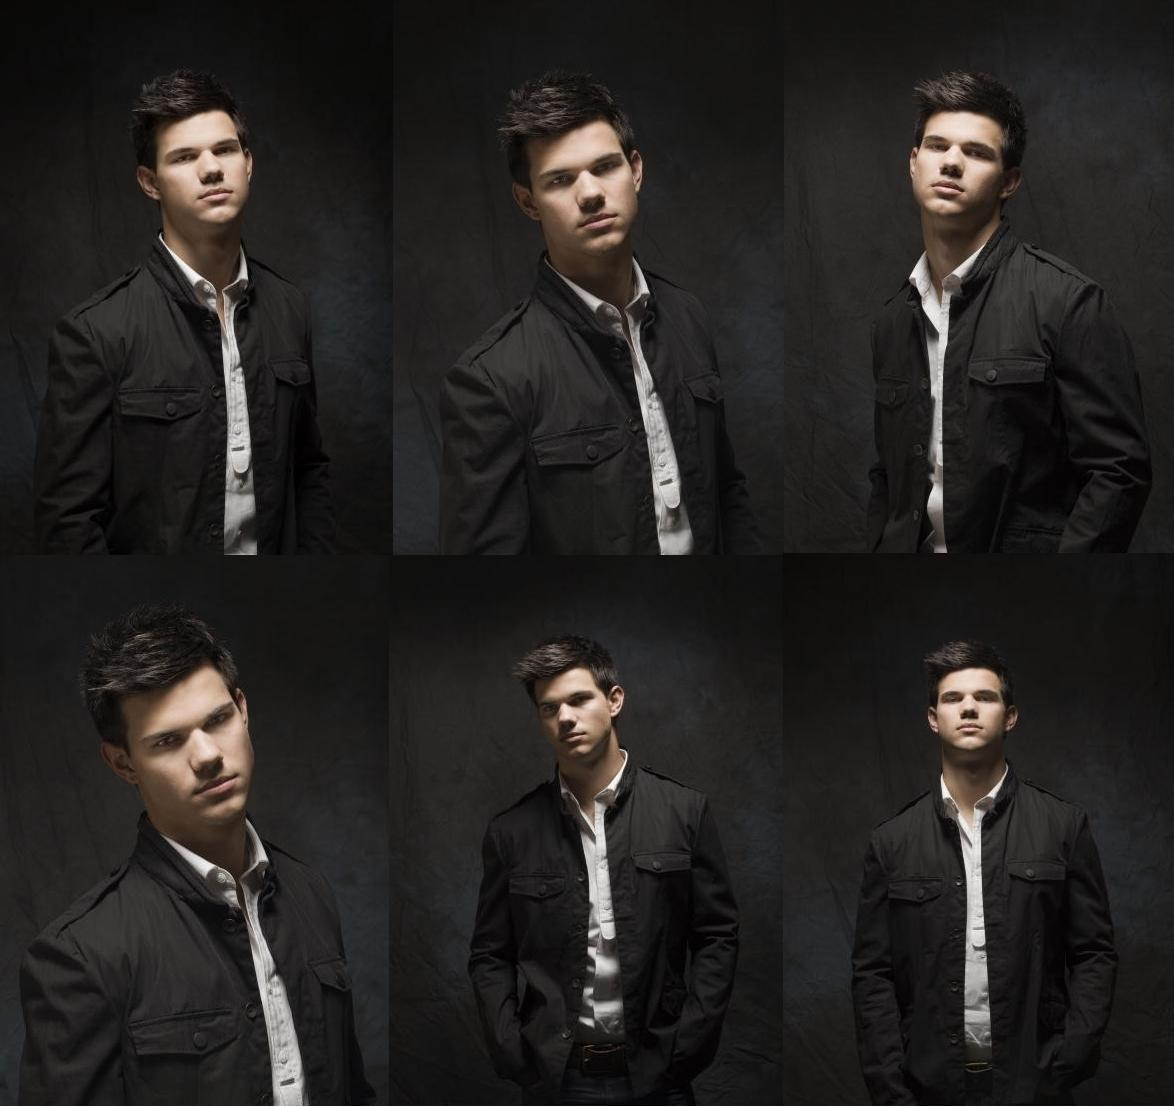 http://images2.fanpop.com/image/photos/10000000/In-Love-with-Talor-Lautner-taylor-lautner-10068272-1174-1107.jpg